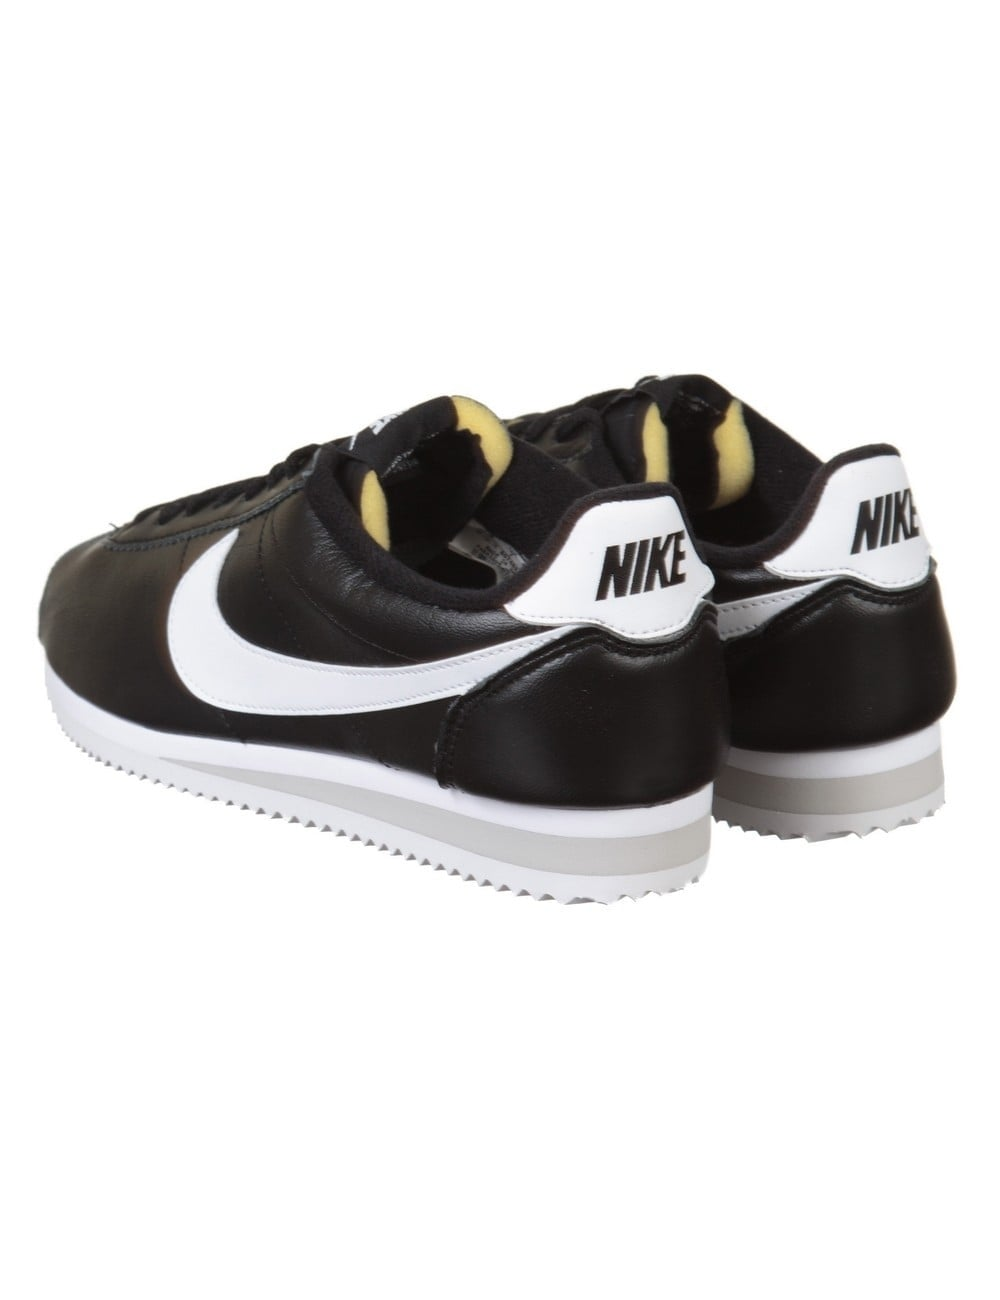 nike classic cortez prm leather shoes black white nike